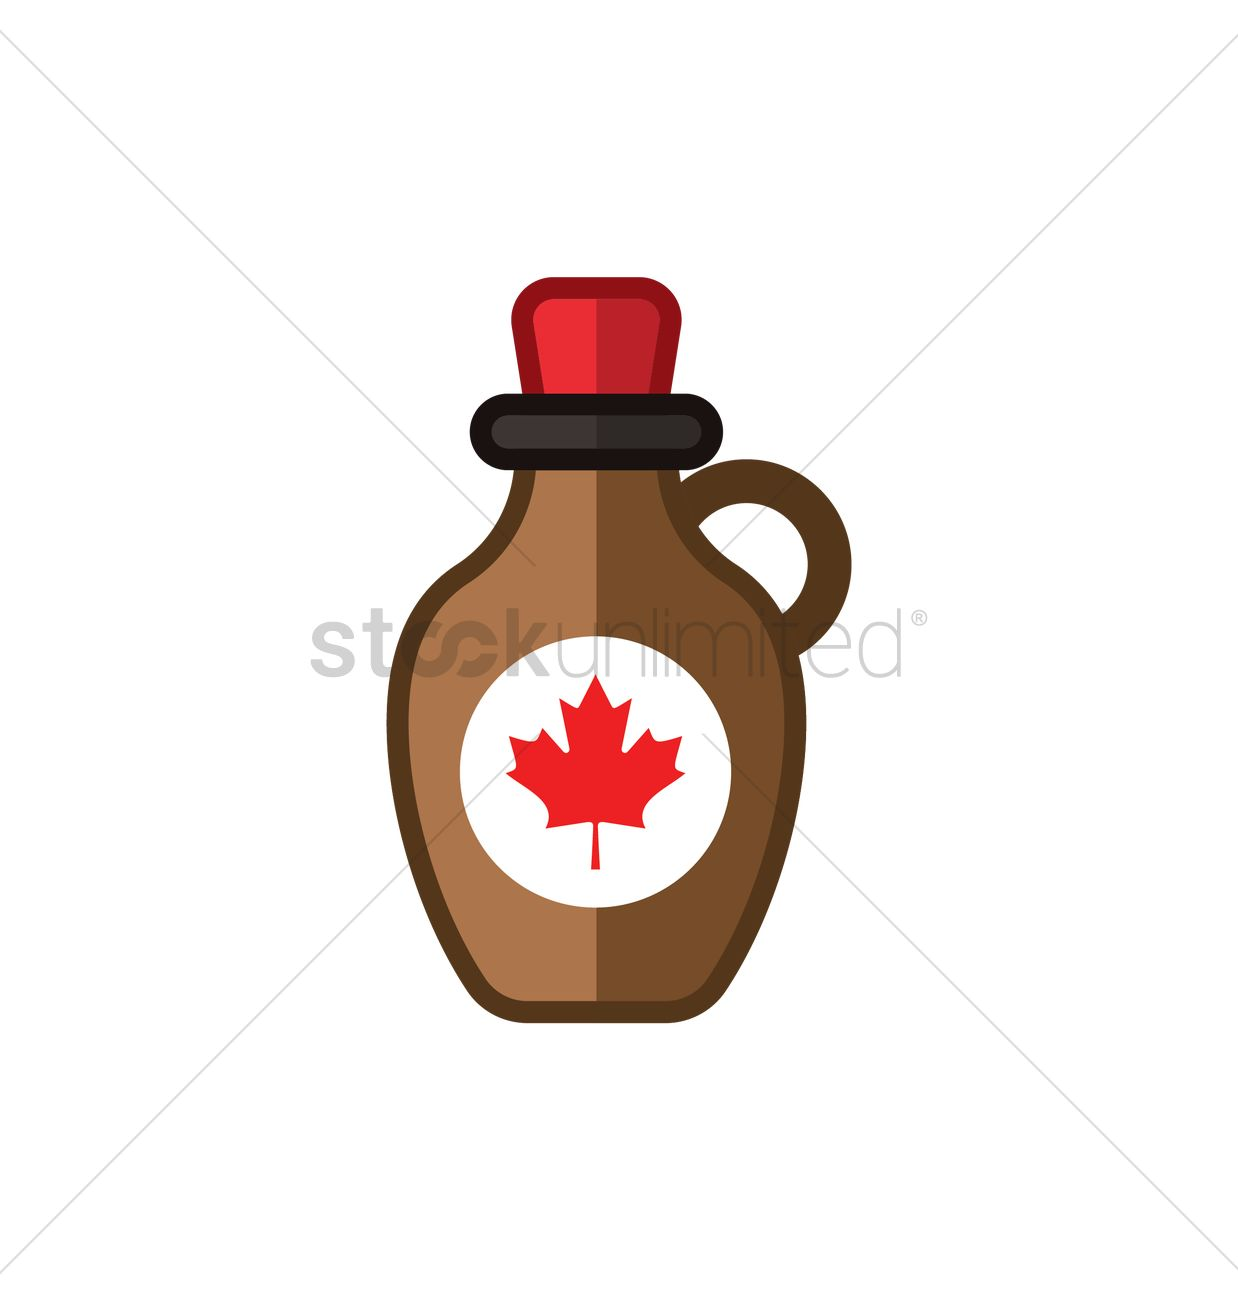 Maple syrup clipart 4 » Clipart Station.